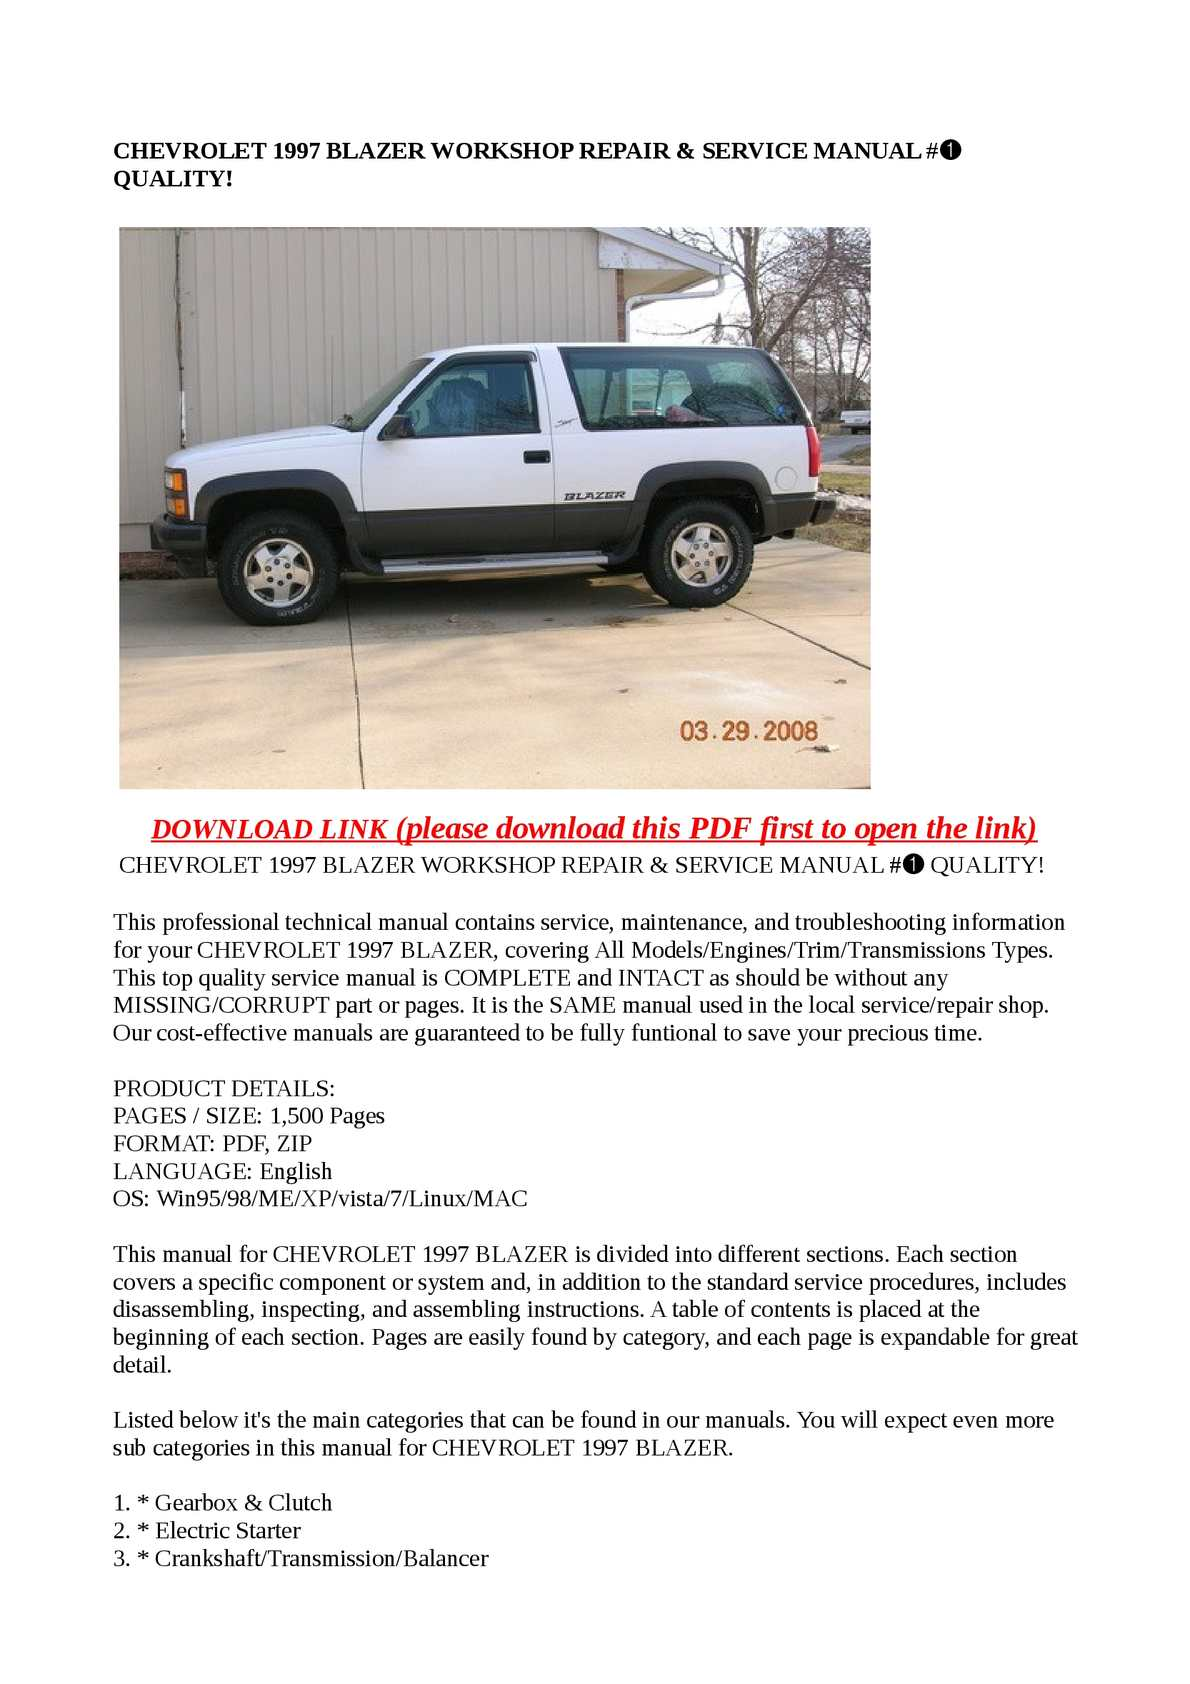 Calaméo - CHEVROLET 1997 BLAZER WORKSHOP REPAIR & SERVICE MANUAL #➀ QUALITY!